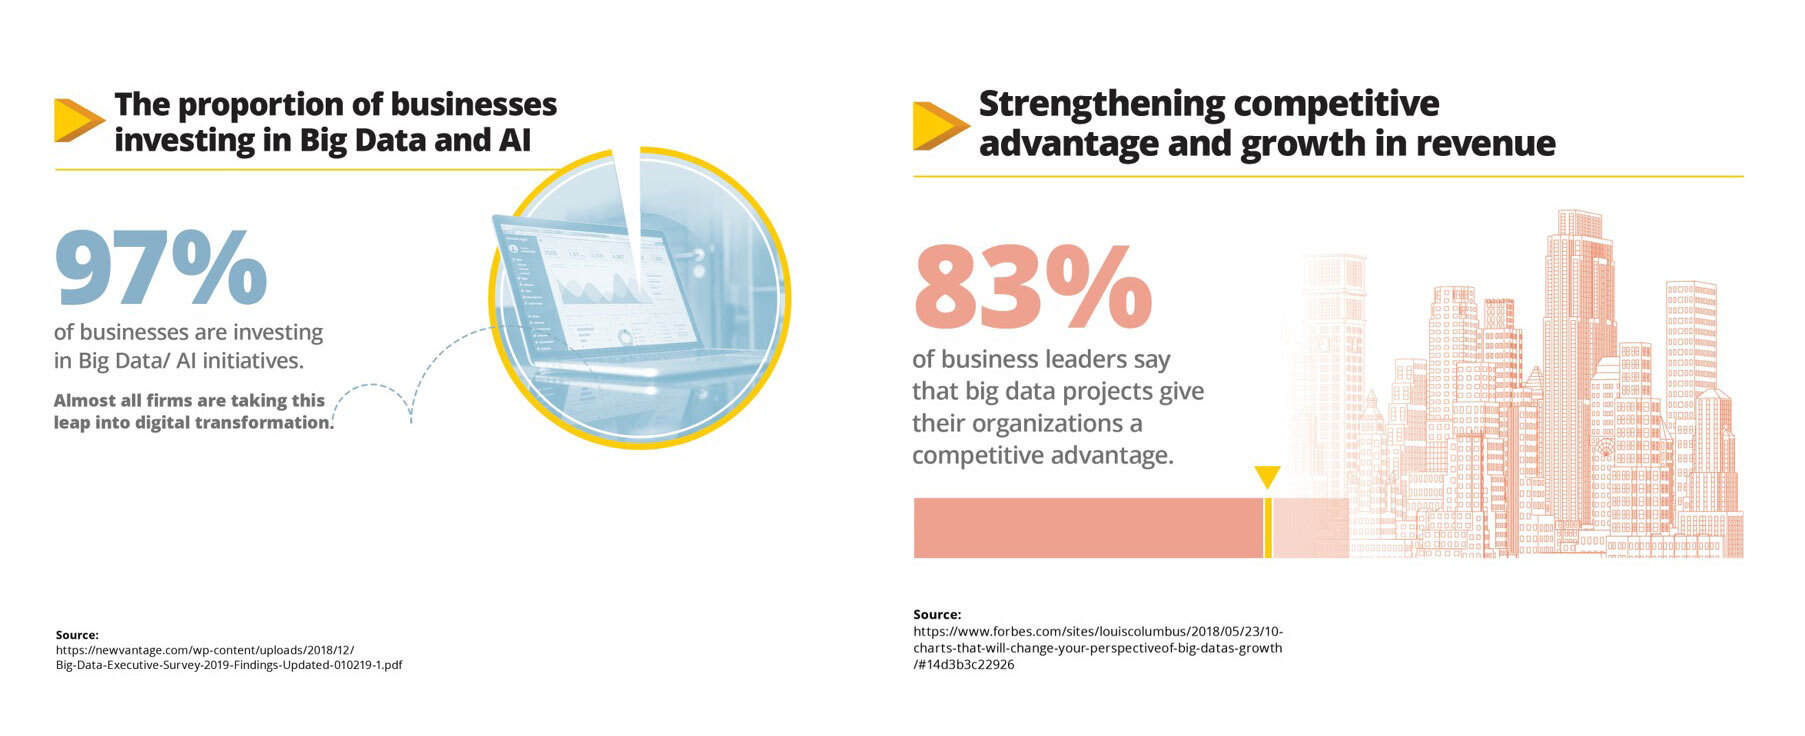 Stats about the percentage of businesses investing in Big Data and AI (97%) and strengthening competitive advantage/growing revenue (83%).